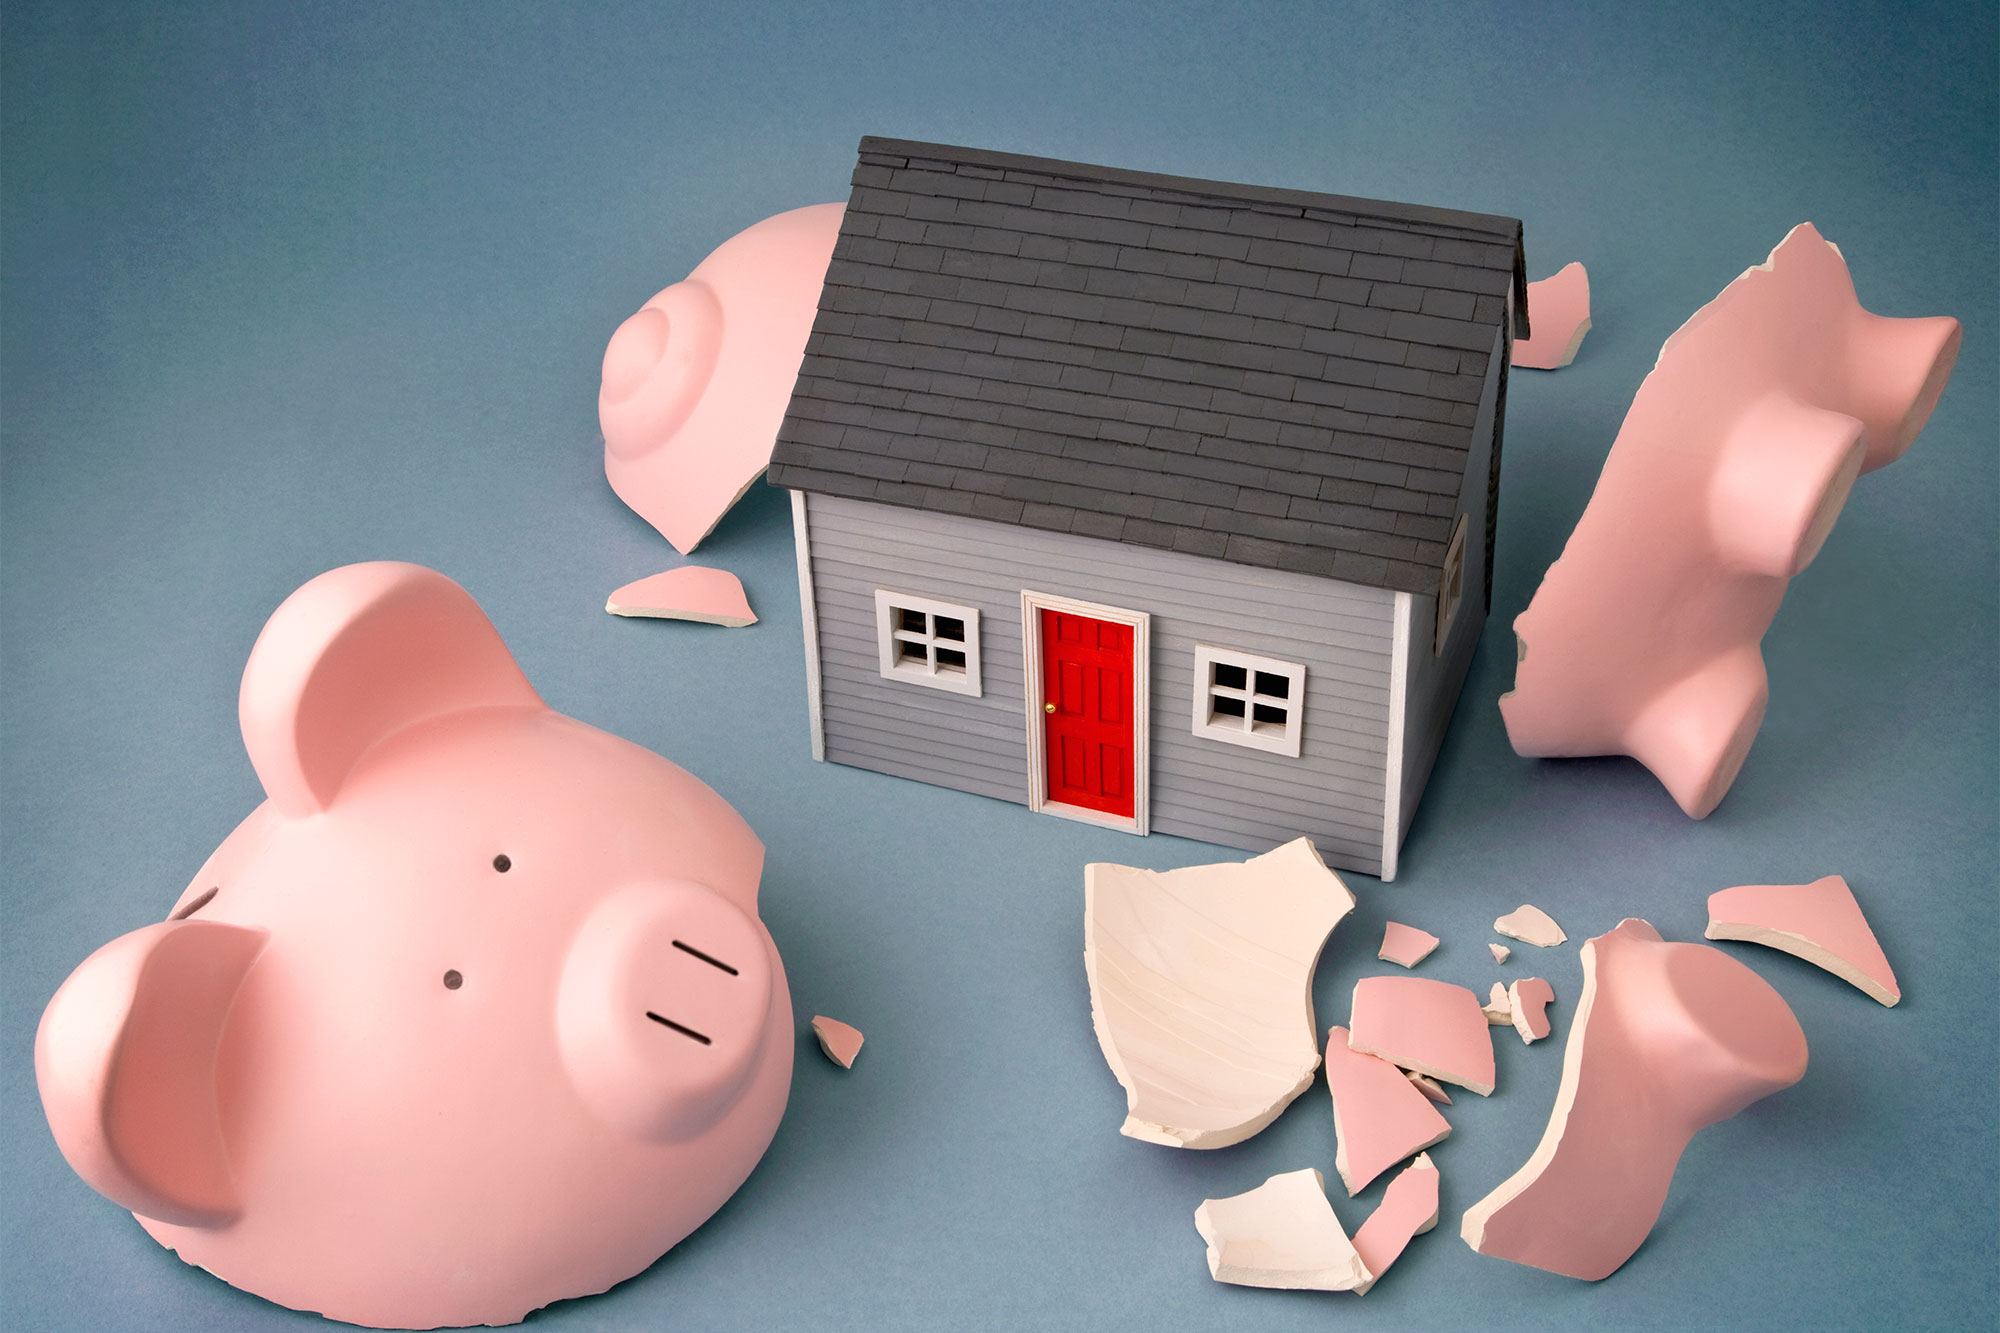 broken-piggy-bank-house